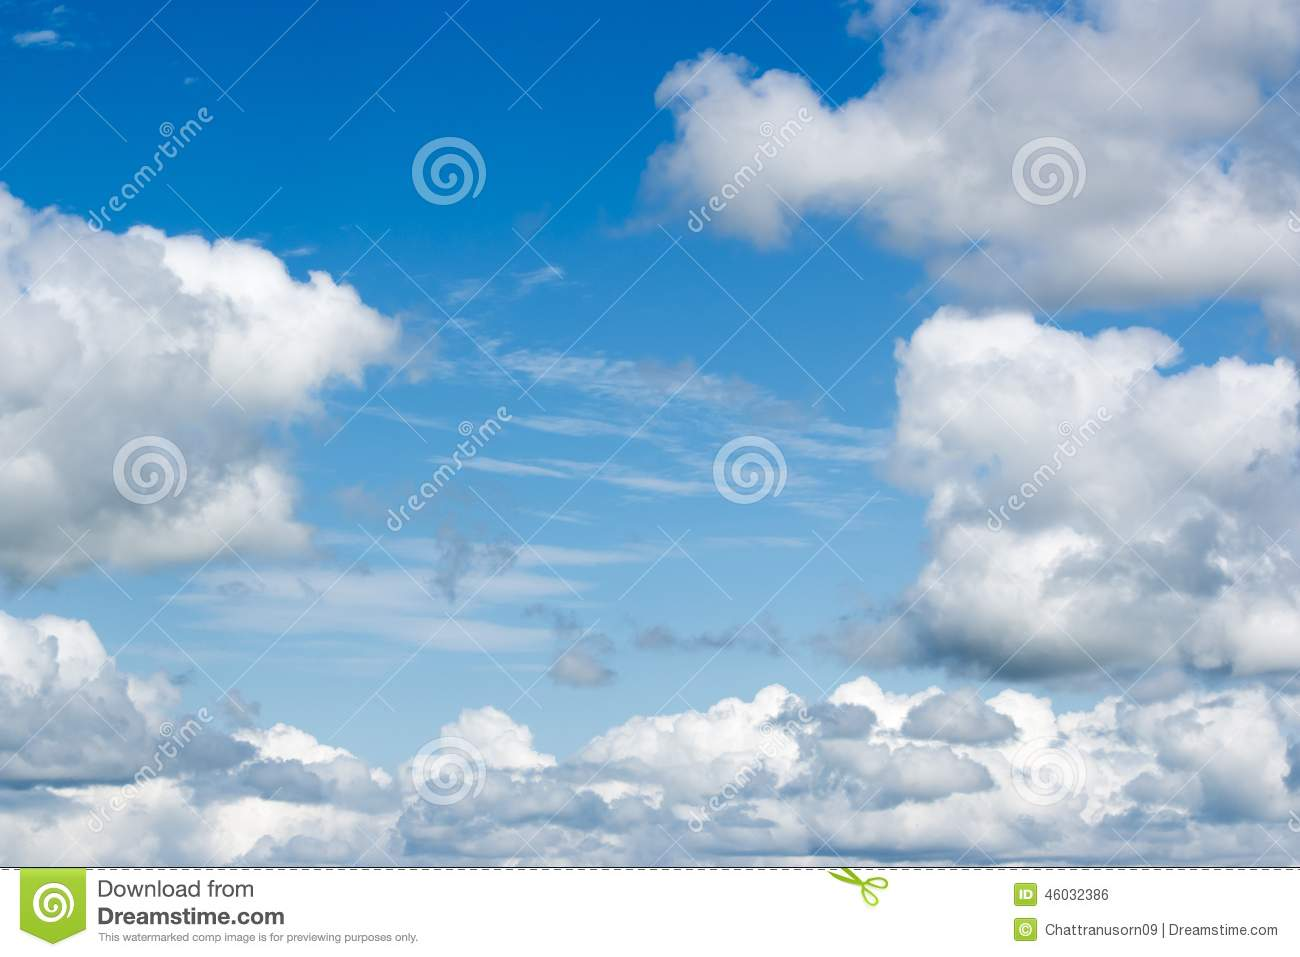 Beauty clouds and blue sky stock photo. Image of high ...